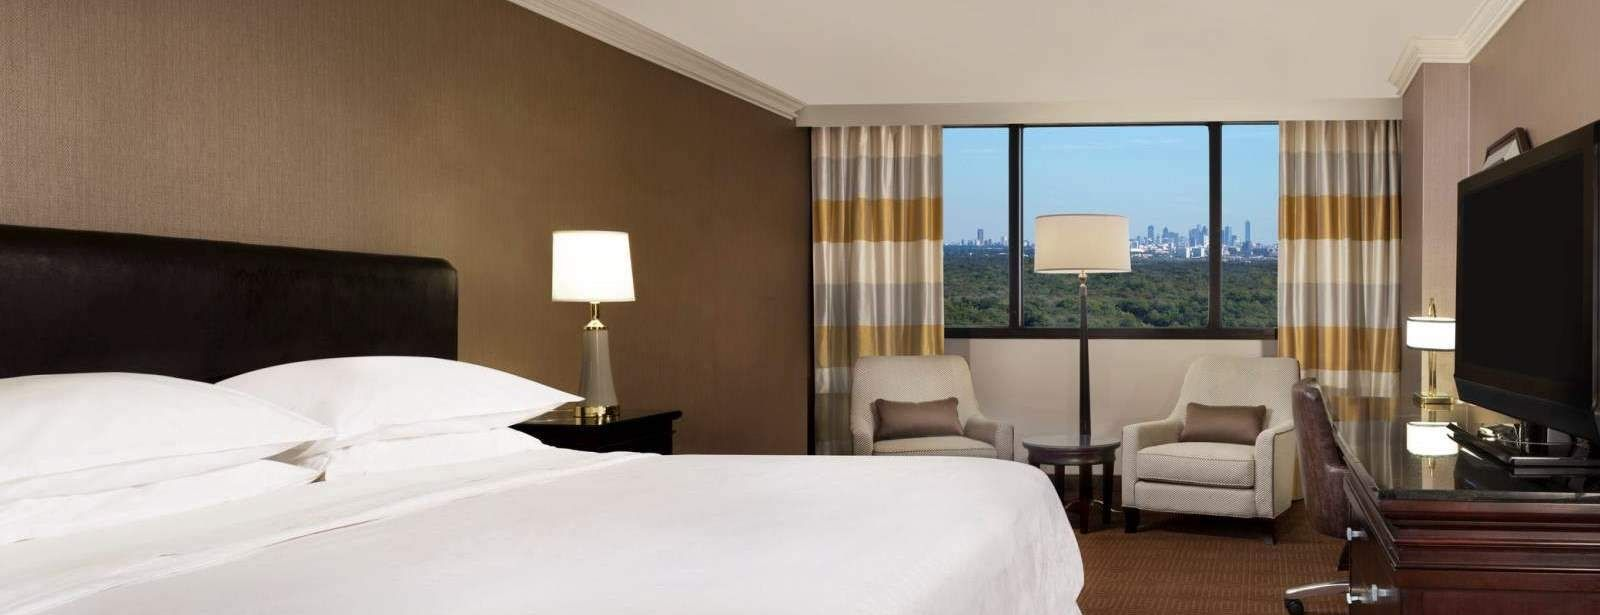 King Guest Room - Sheraton DFW Airport Hotel